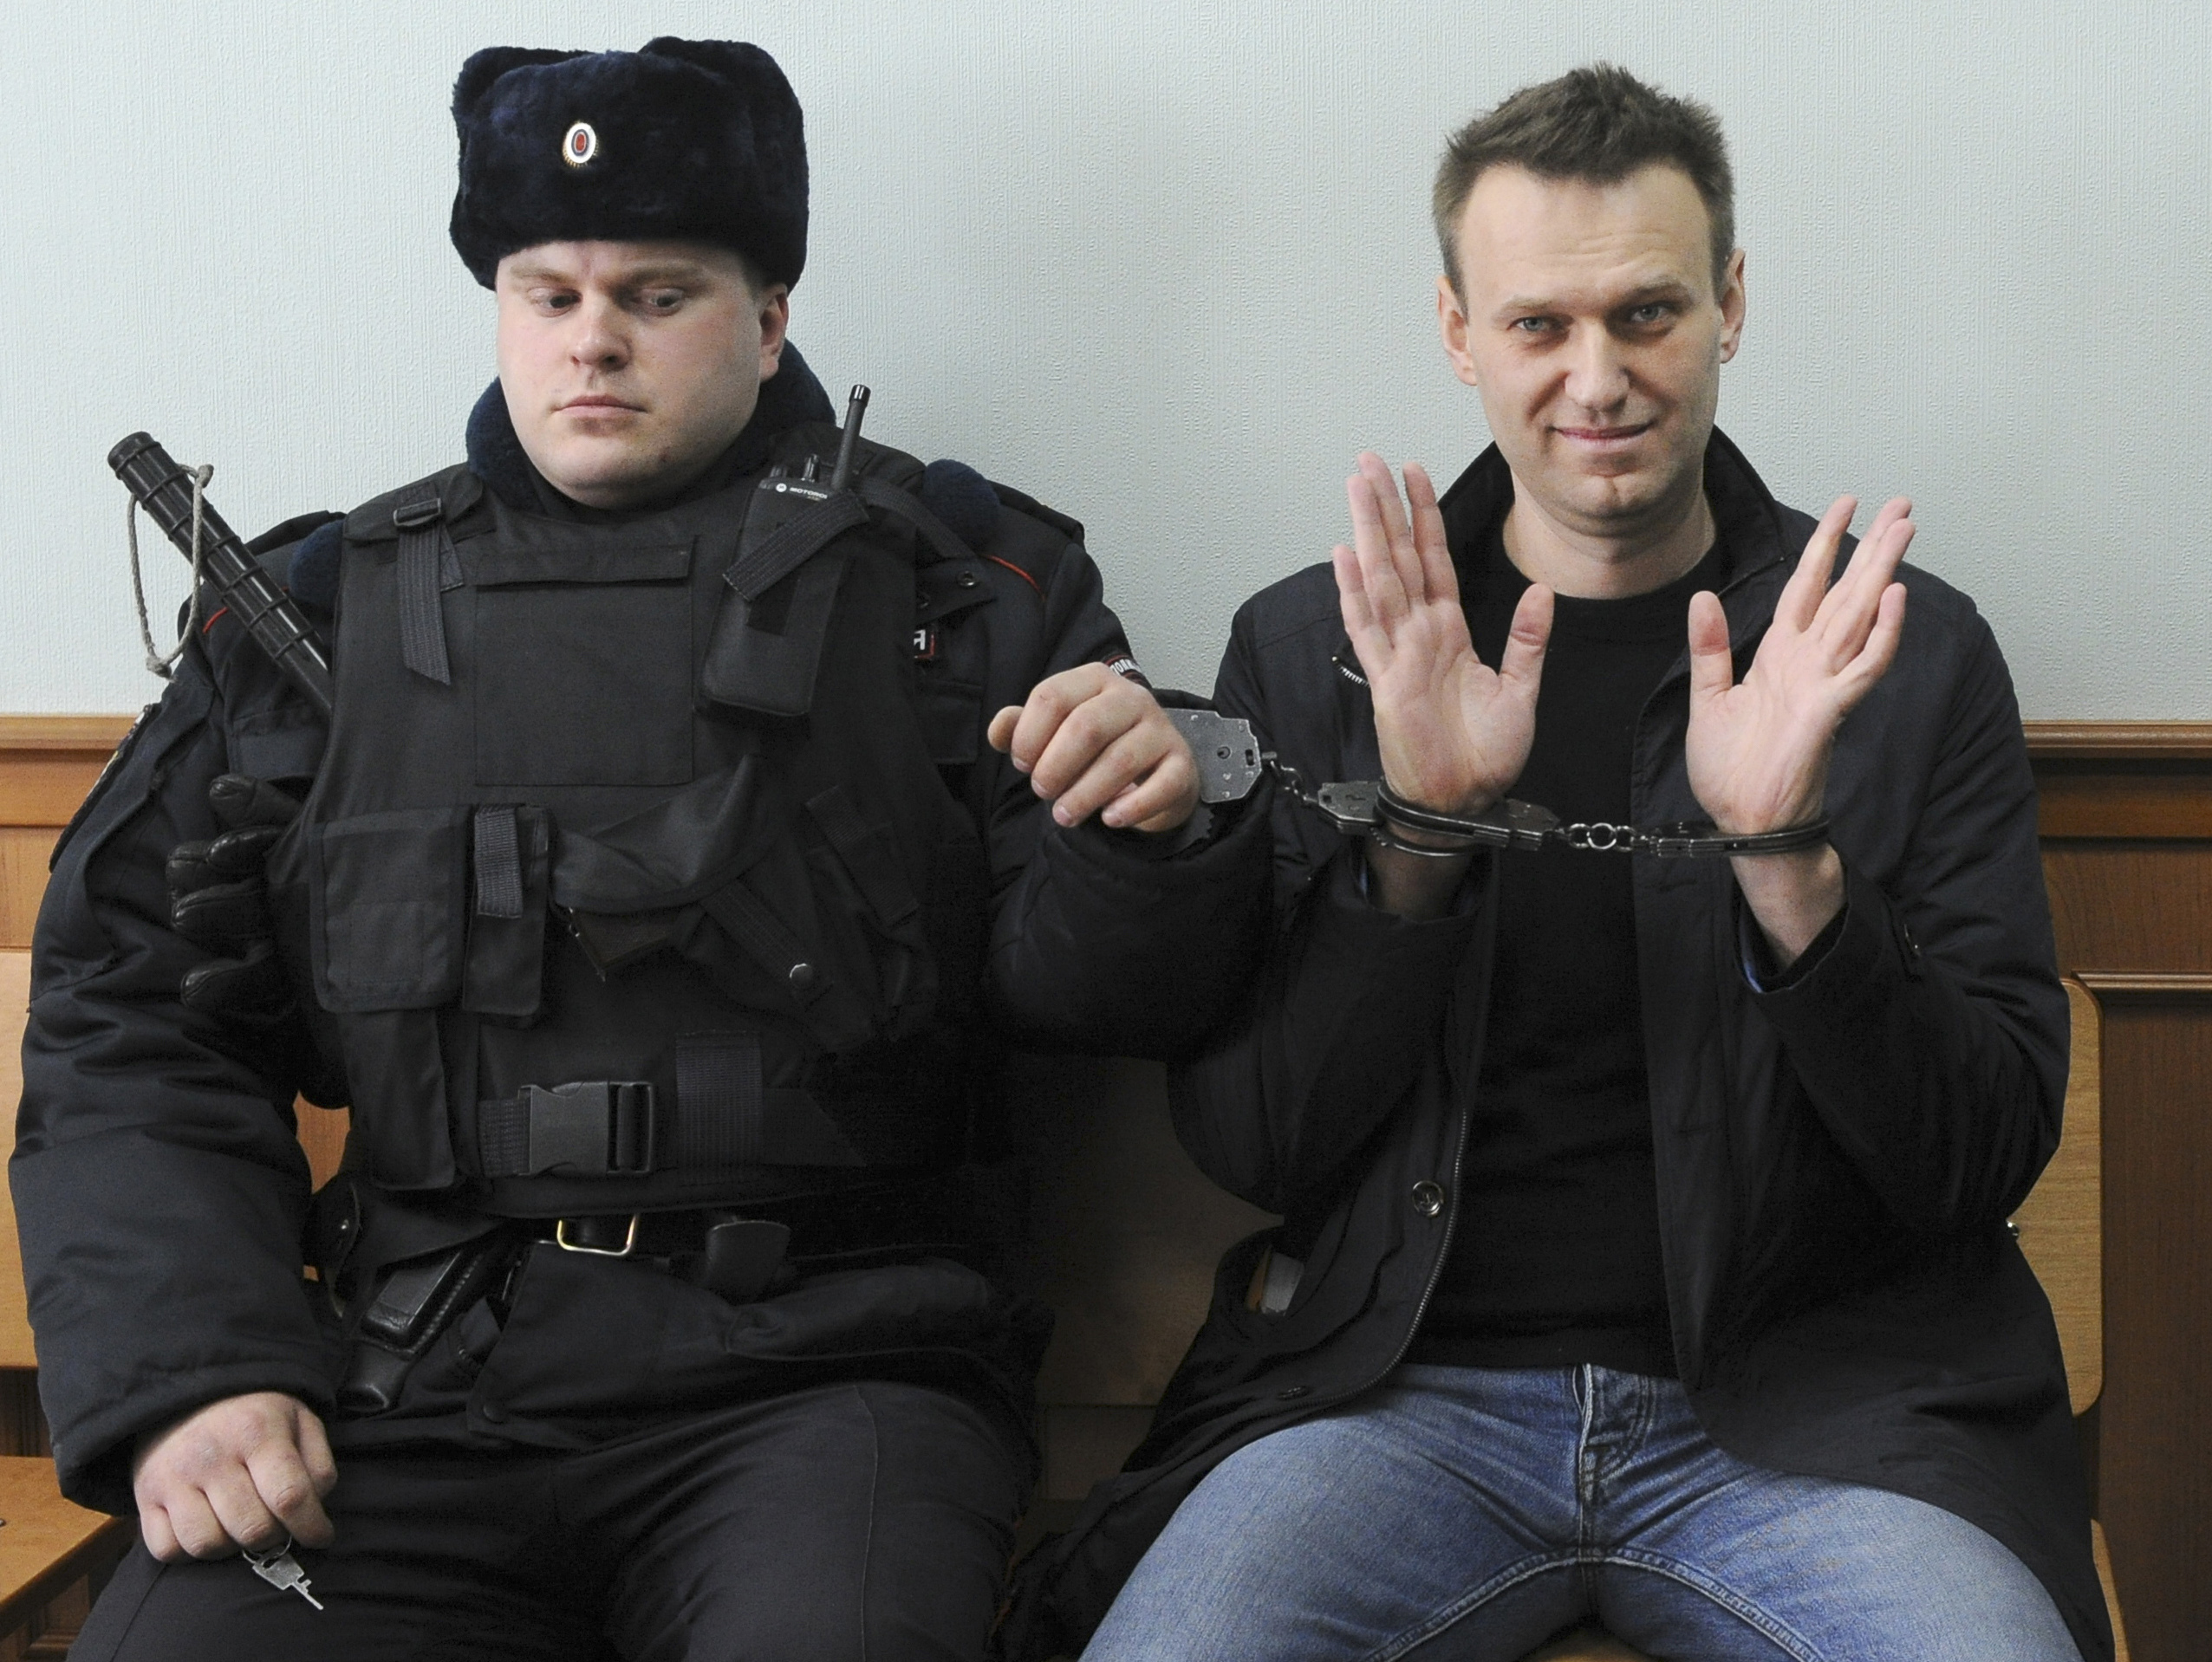 Russian opposition leader Alexei Navalny, right, poses for press in court in Moscow, Russia, Thursday, March 30, 2017. Navalny attends a court hearing on his appeal. Navalny, who organized a wave of nationwide protests against government corruption was sentenced to 15 days in jail.(AP Photo)